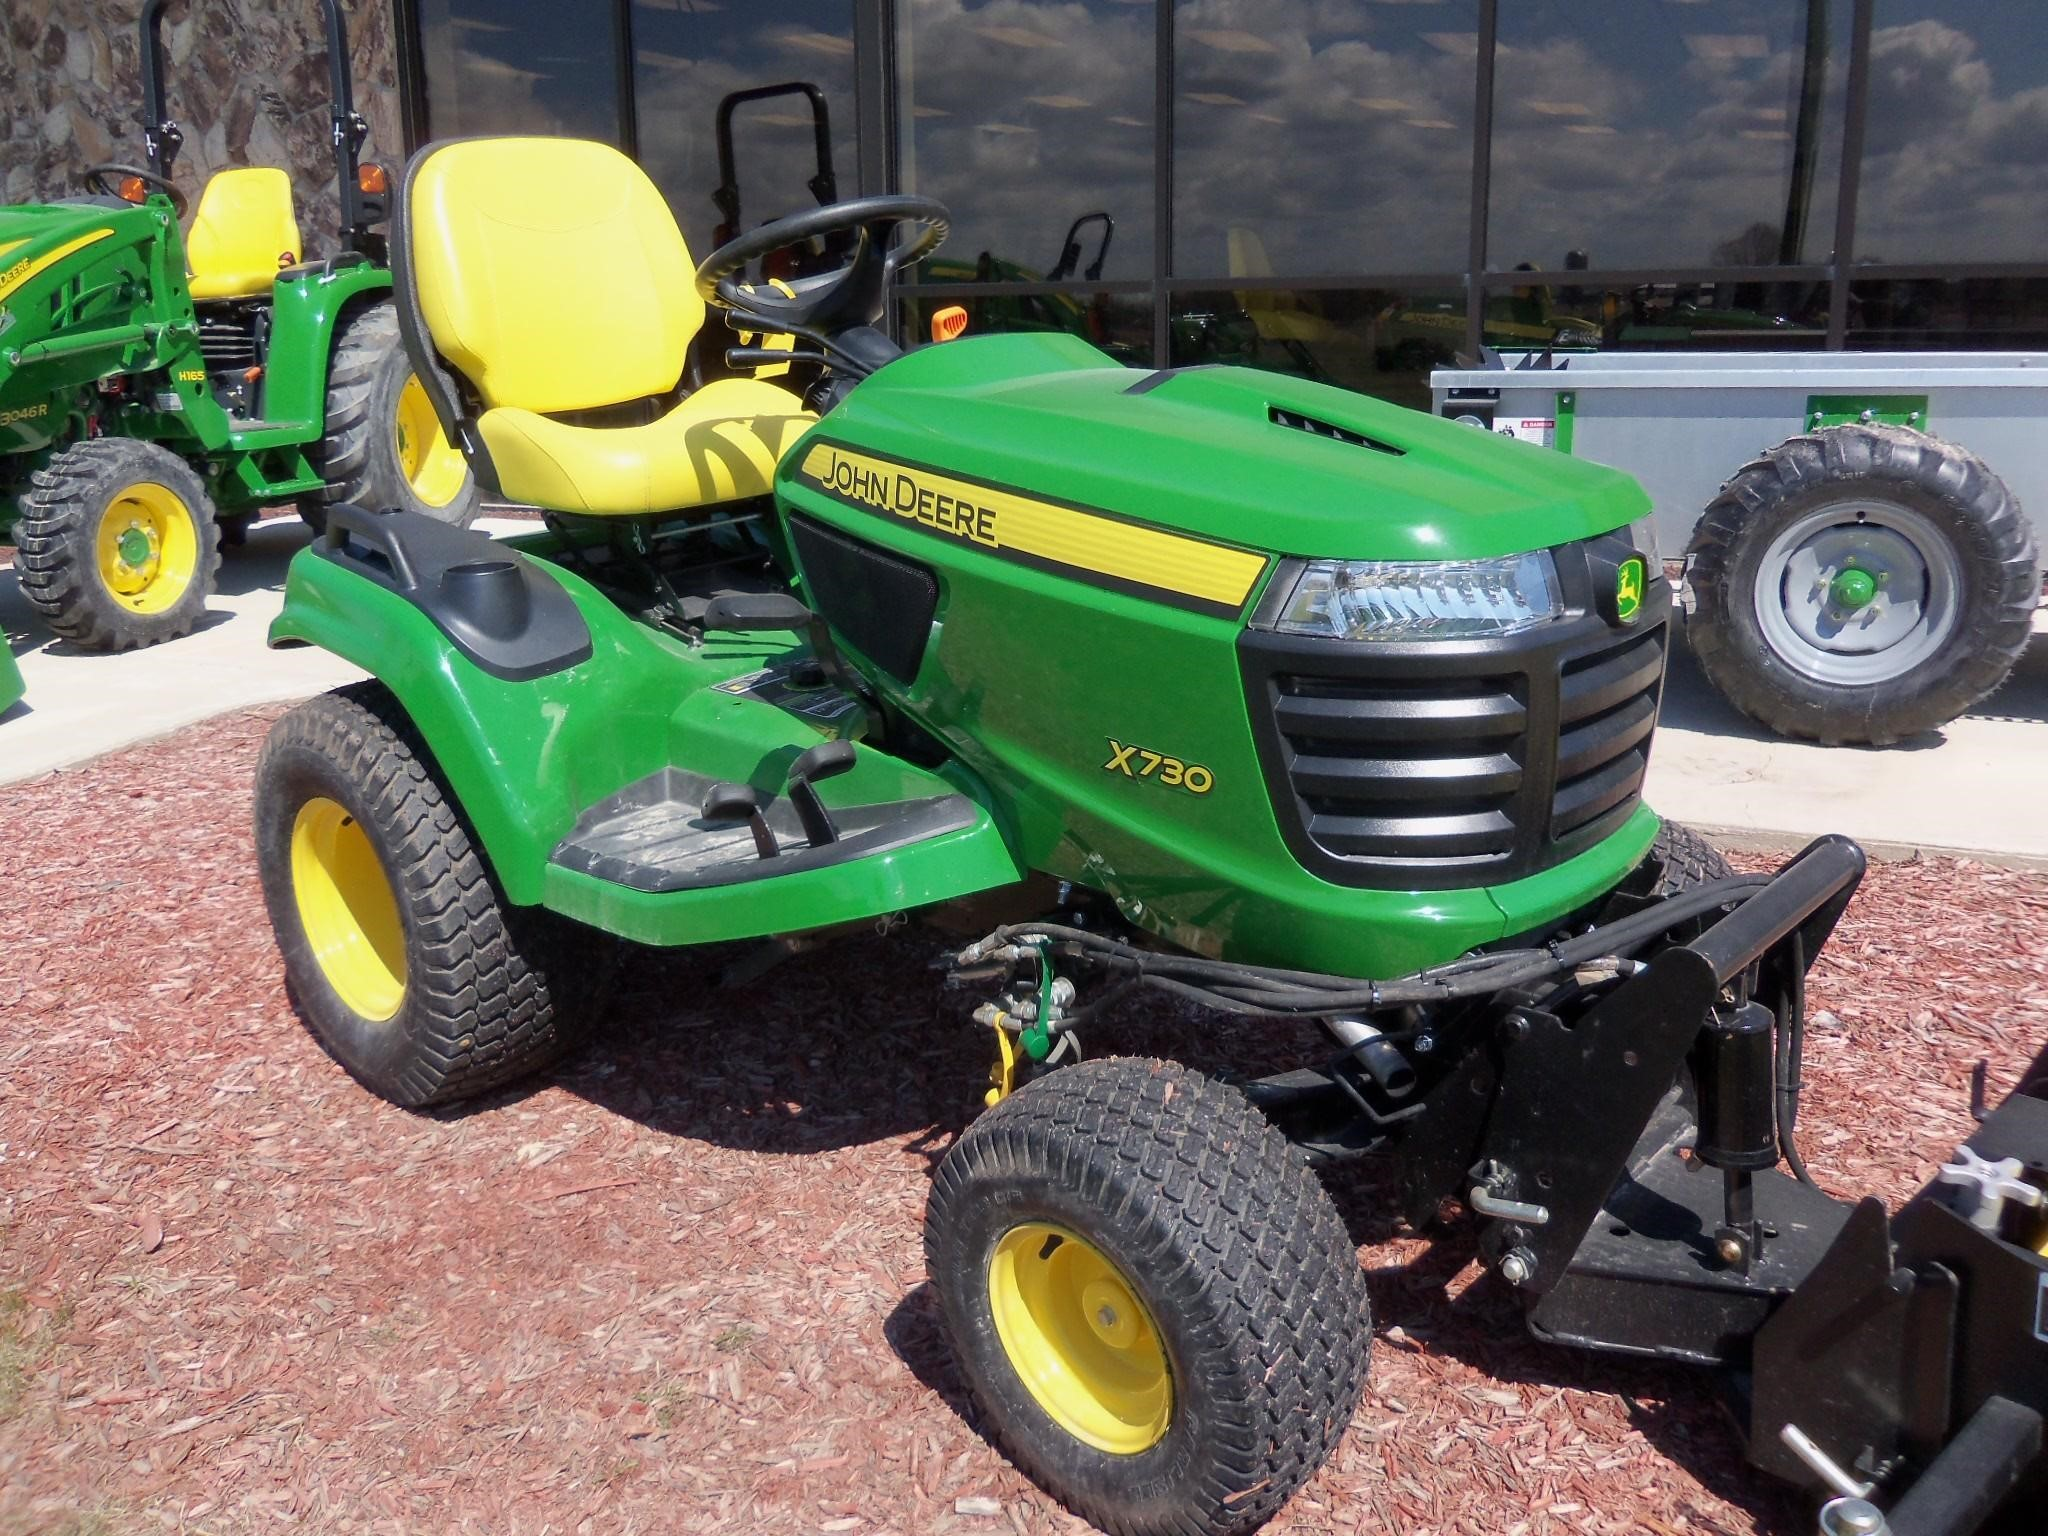 wisconsin ag connection john deere x730 riding lawn mowers for sale. Black Bedroom Furniture Sets. Home Design Ideas